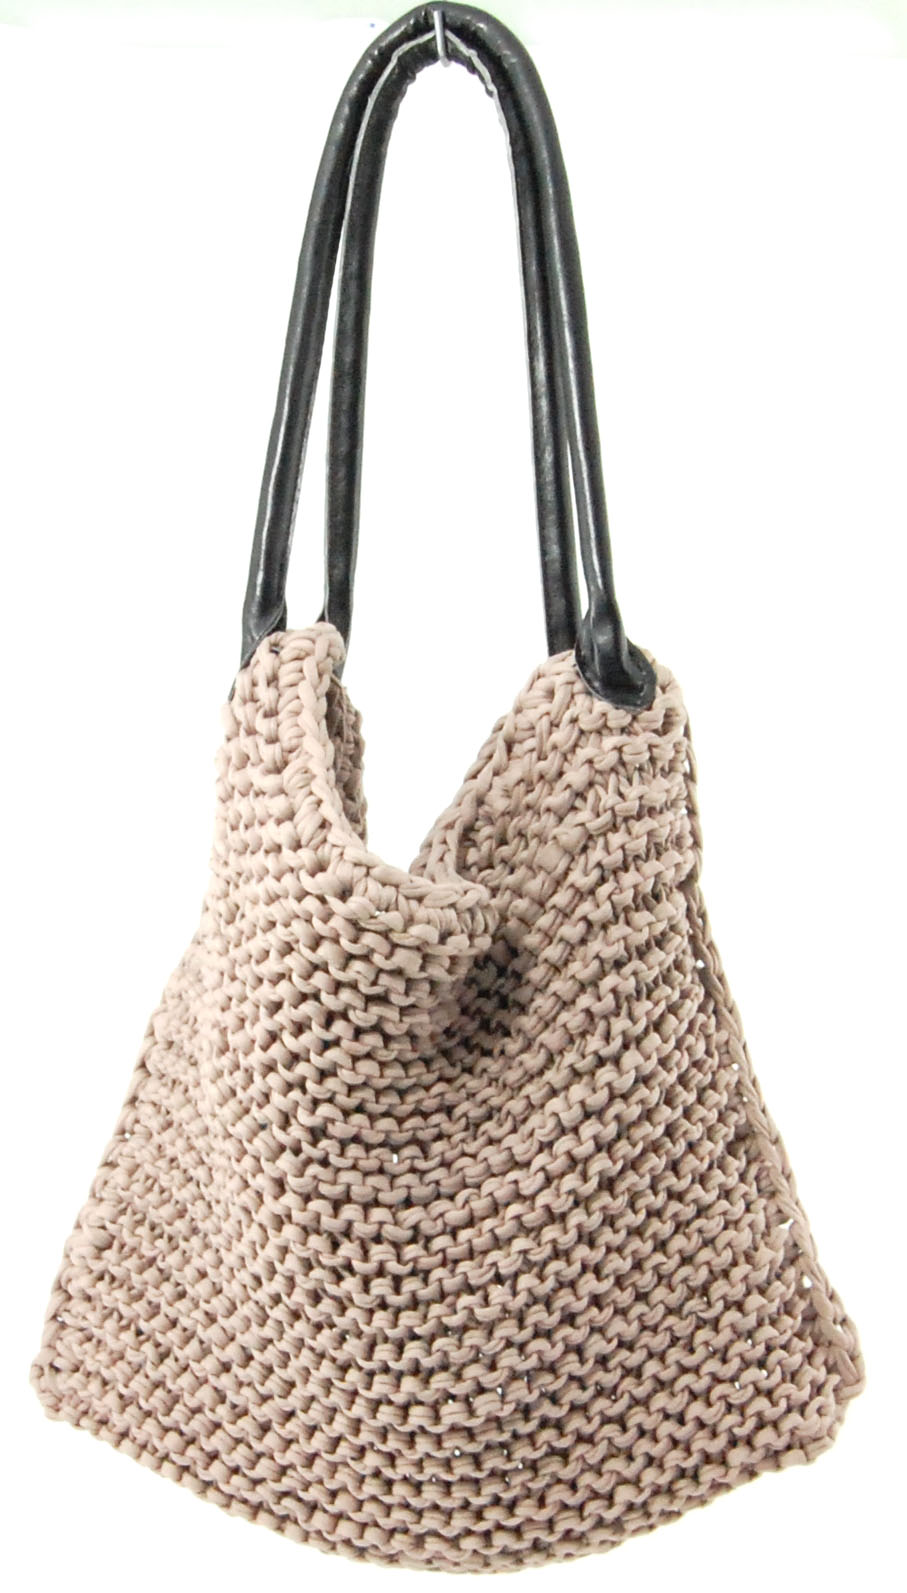 Woolen Crochet Purse : Knitted bag tutorial